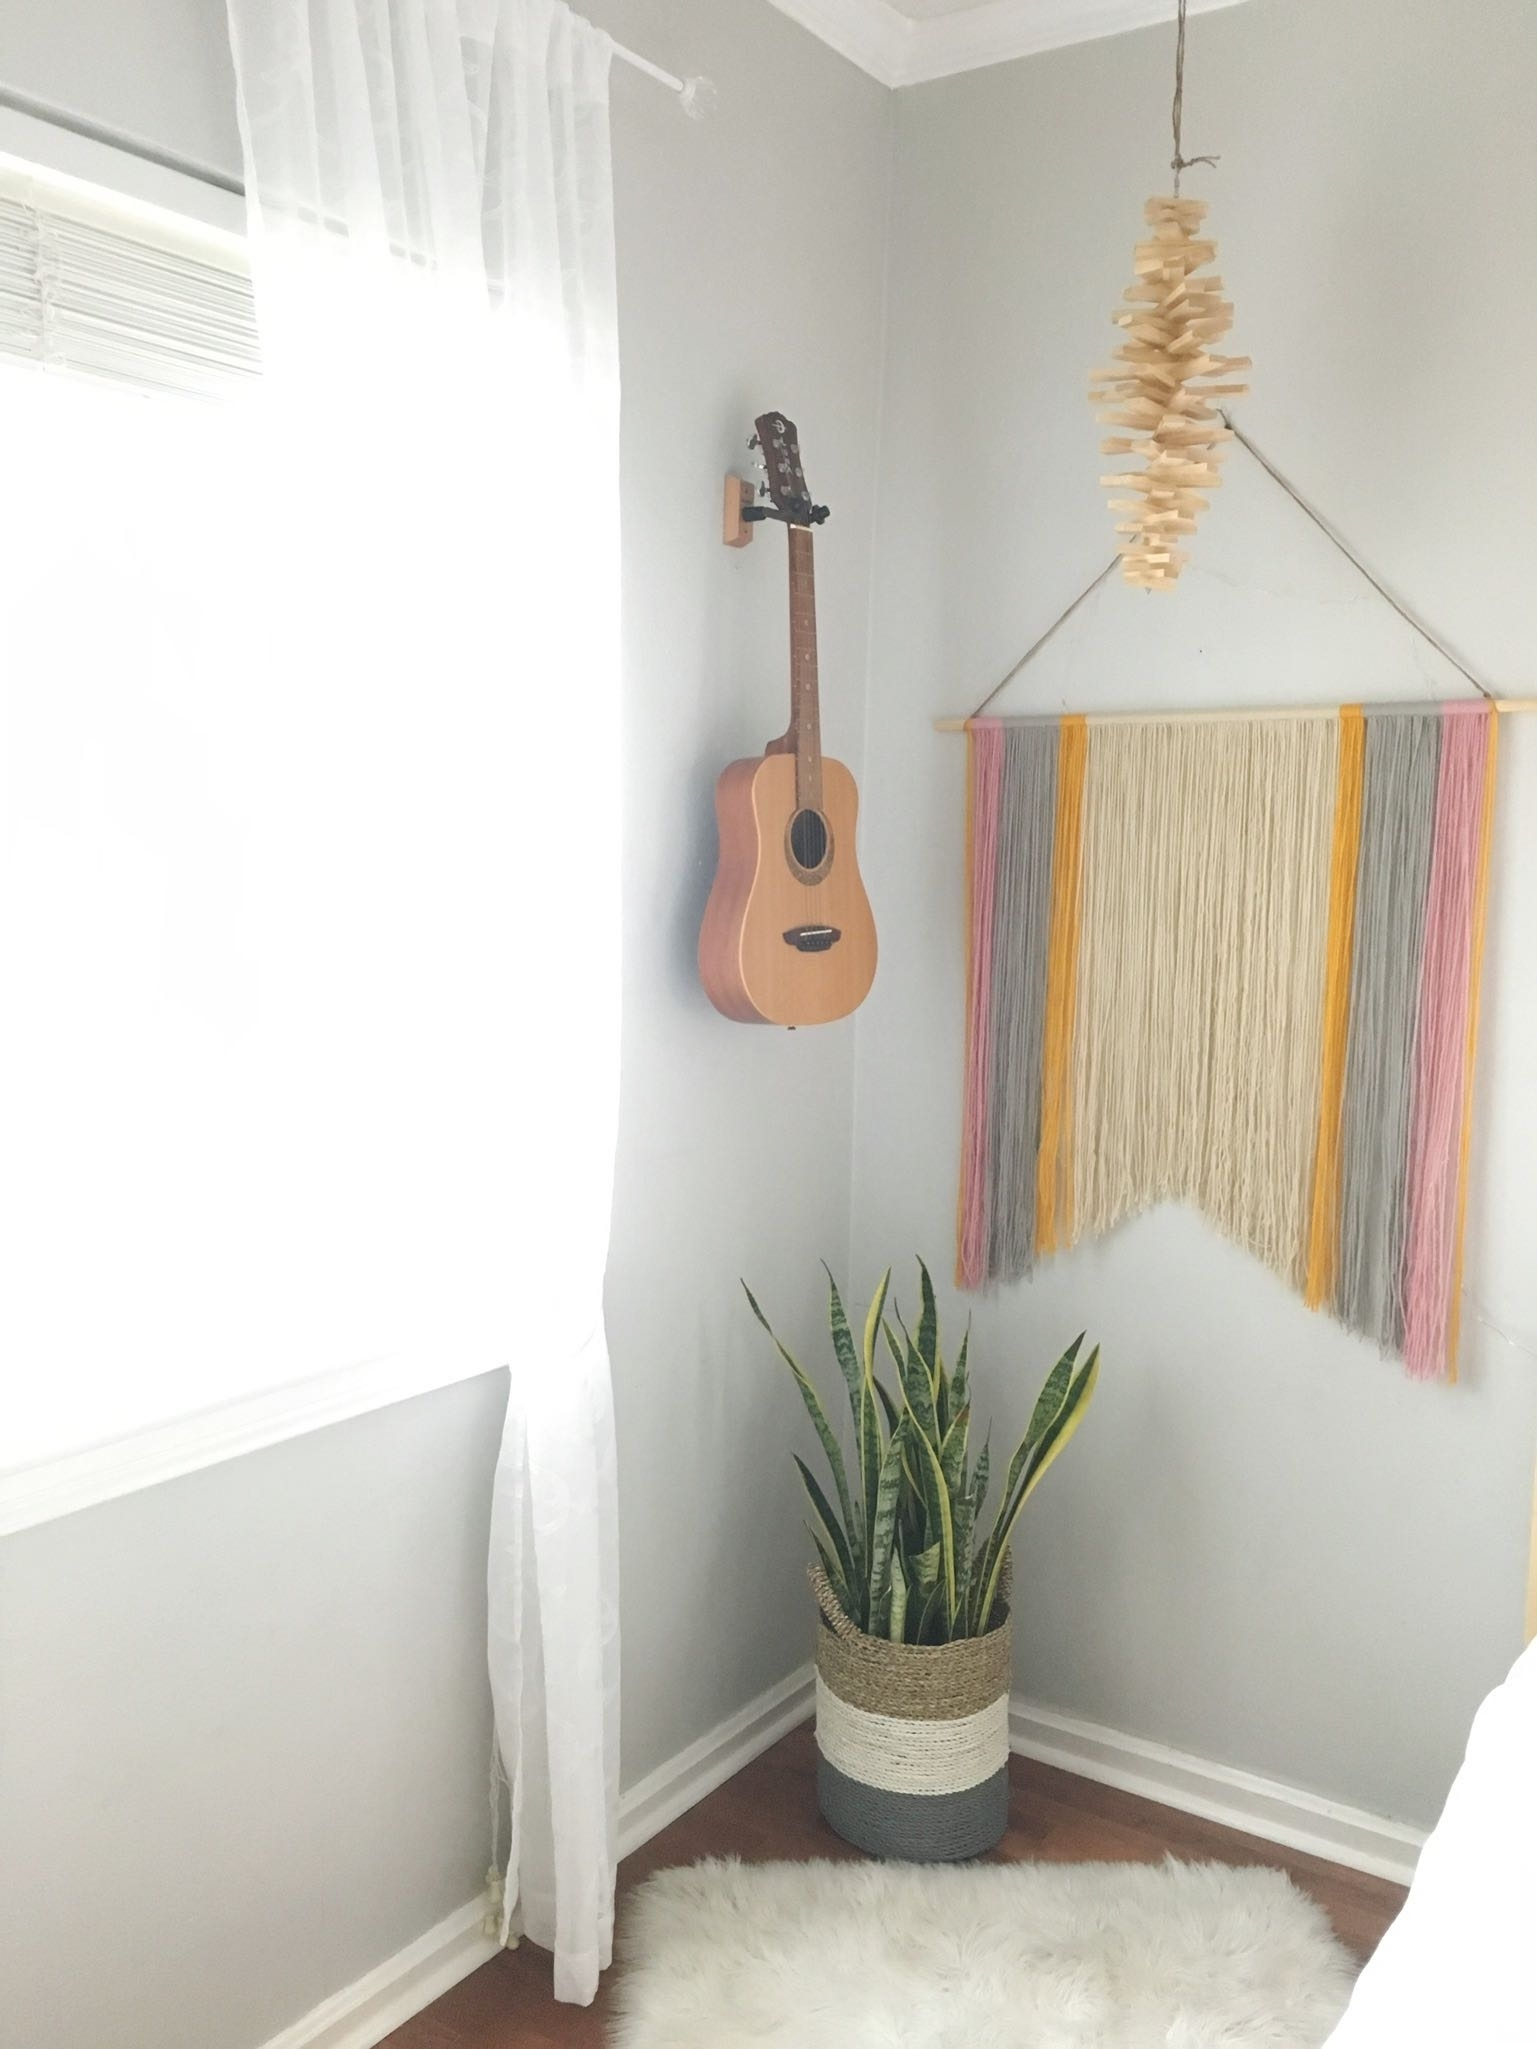 Simple Diy Yarn Wall Art For $10 (Or Less) | That Homebird Life For Most Up To Date Yarn Wall Art (View 17 of 20)